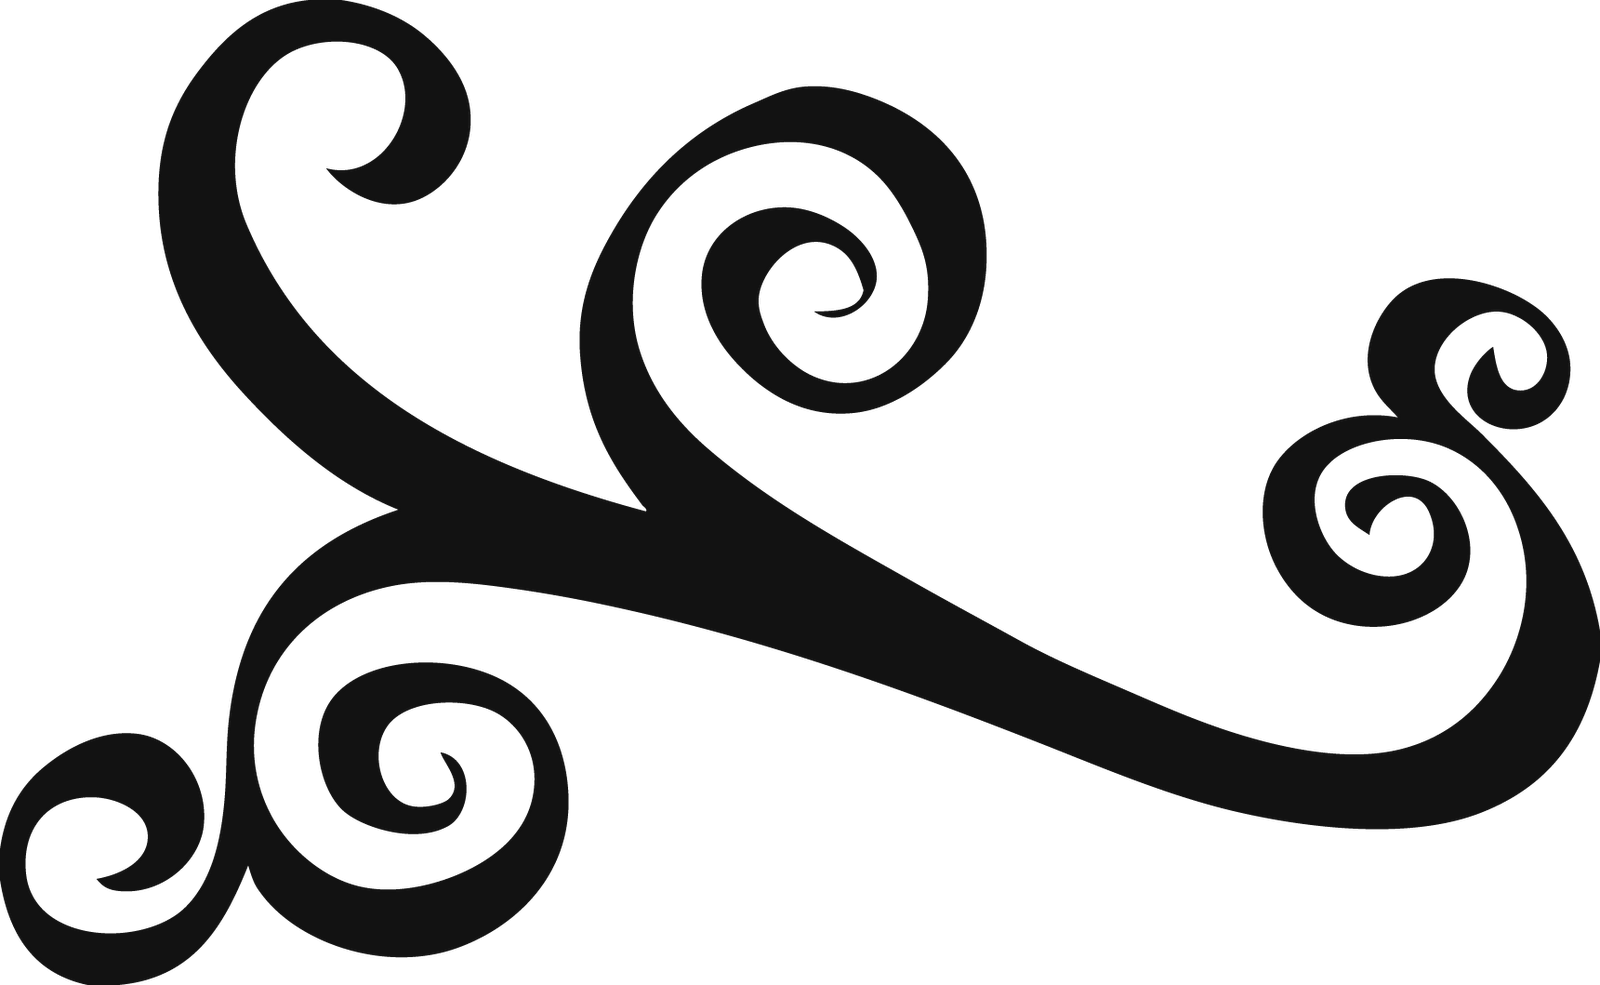 1600x985 Scroll clipart swirls